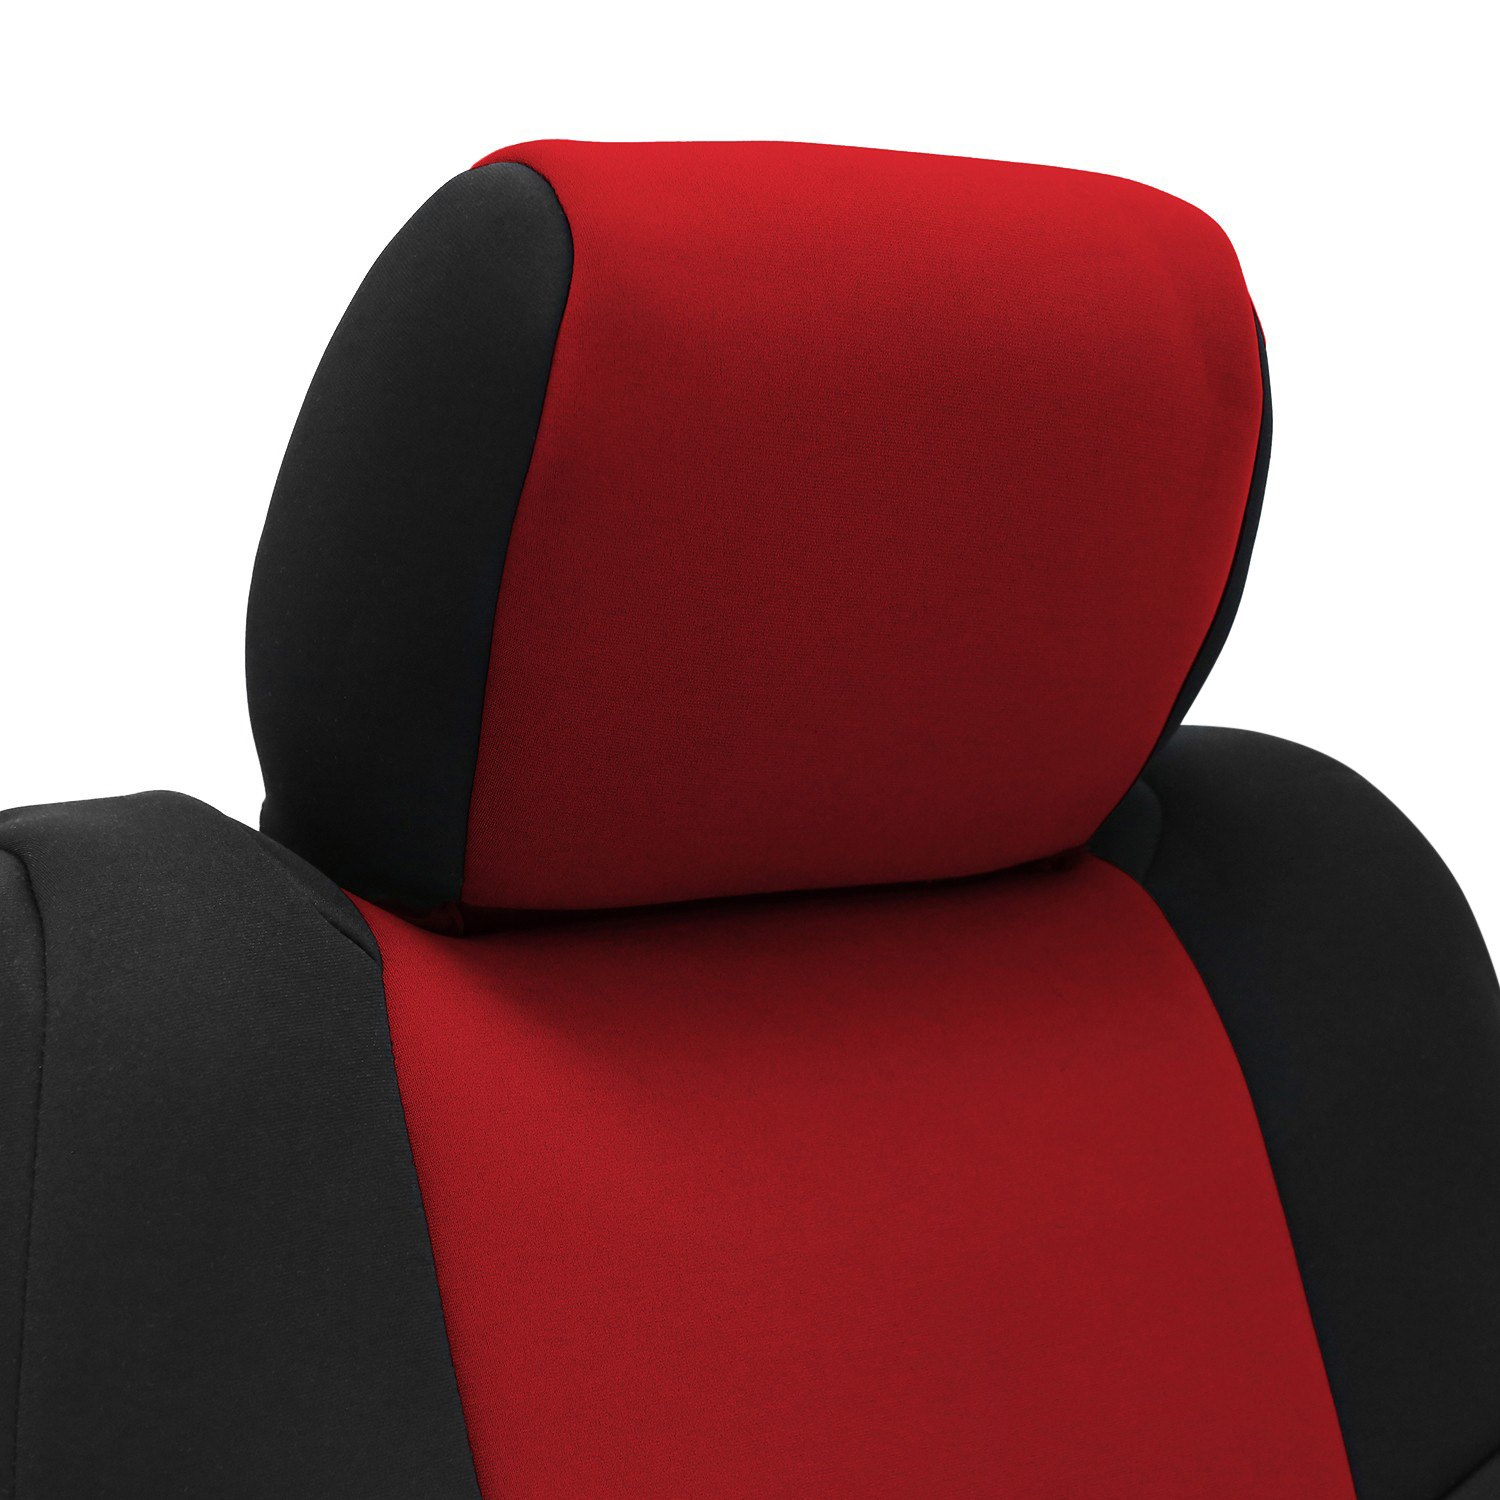 Jeep Seat Covers >> Coverking® - Jeep Commander 2006-2008 CR-Grade Neoprene Custom Seat Covers